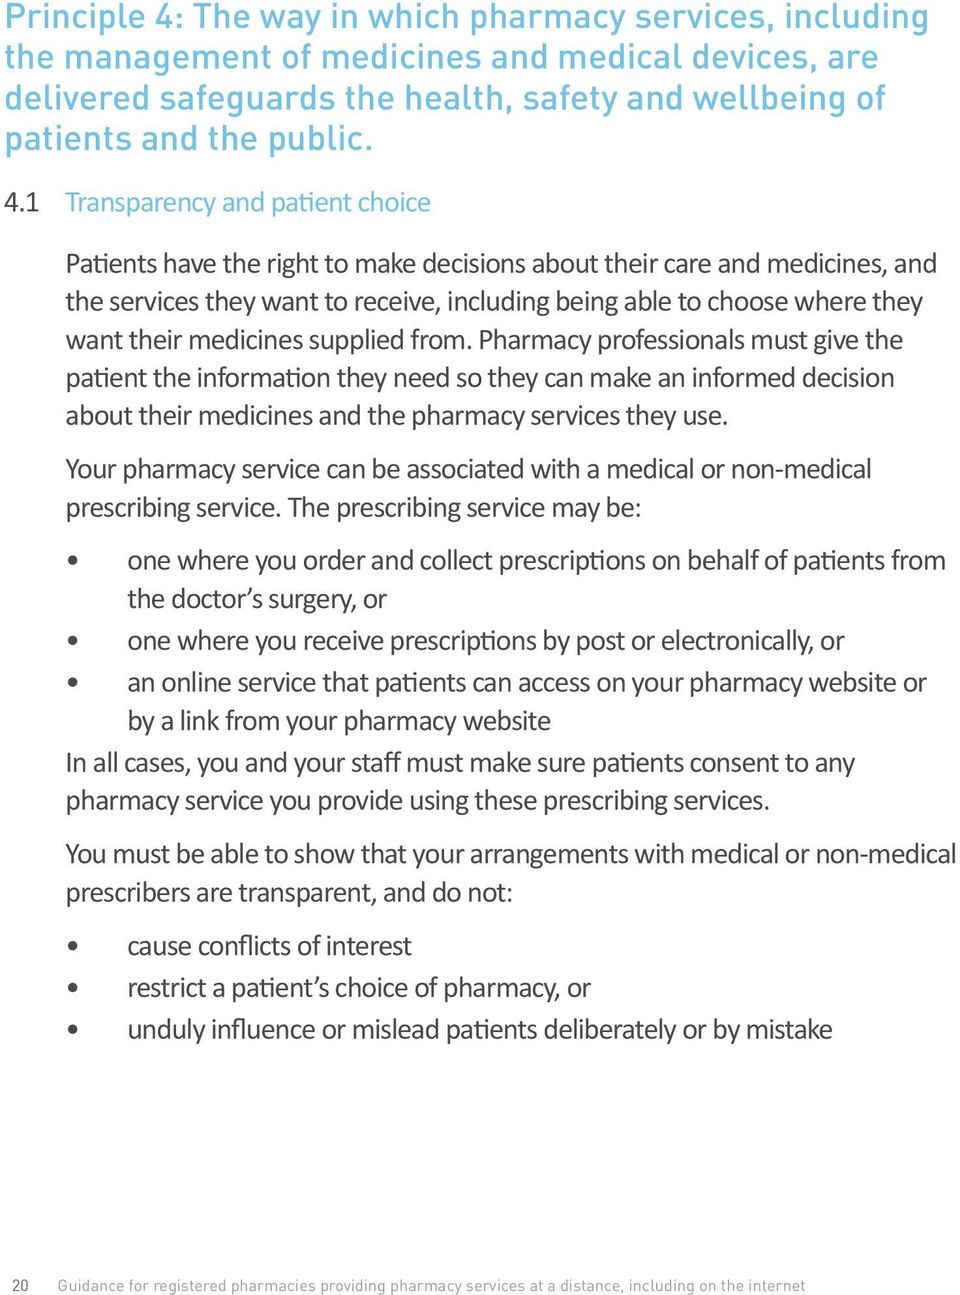 1 Transparency and patient choice Patients have the right to make decisions about their care and medicines, and the services they want to receive, including being able to choose where they want their